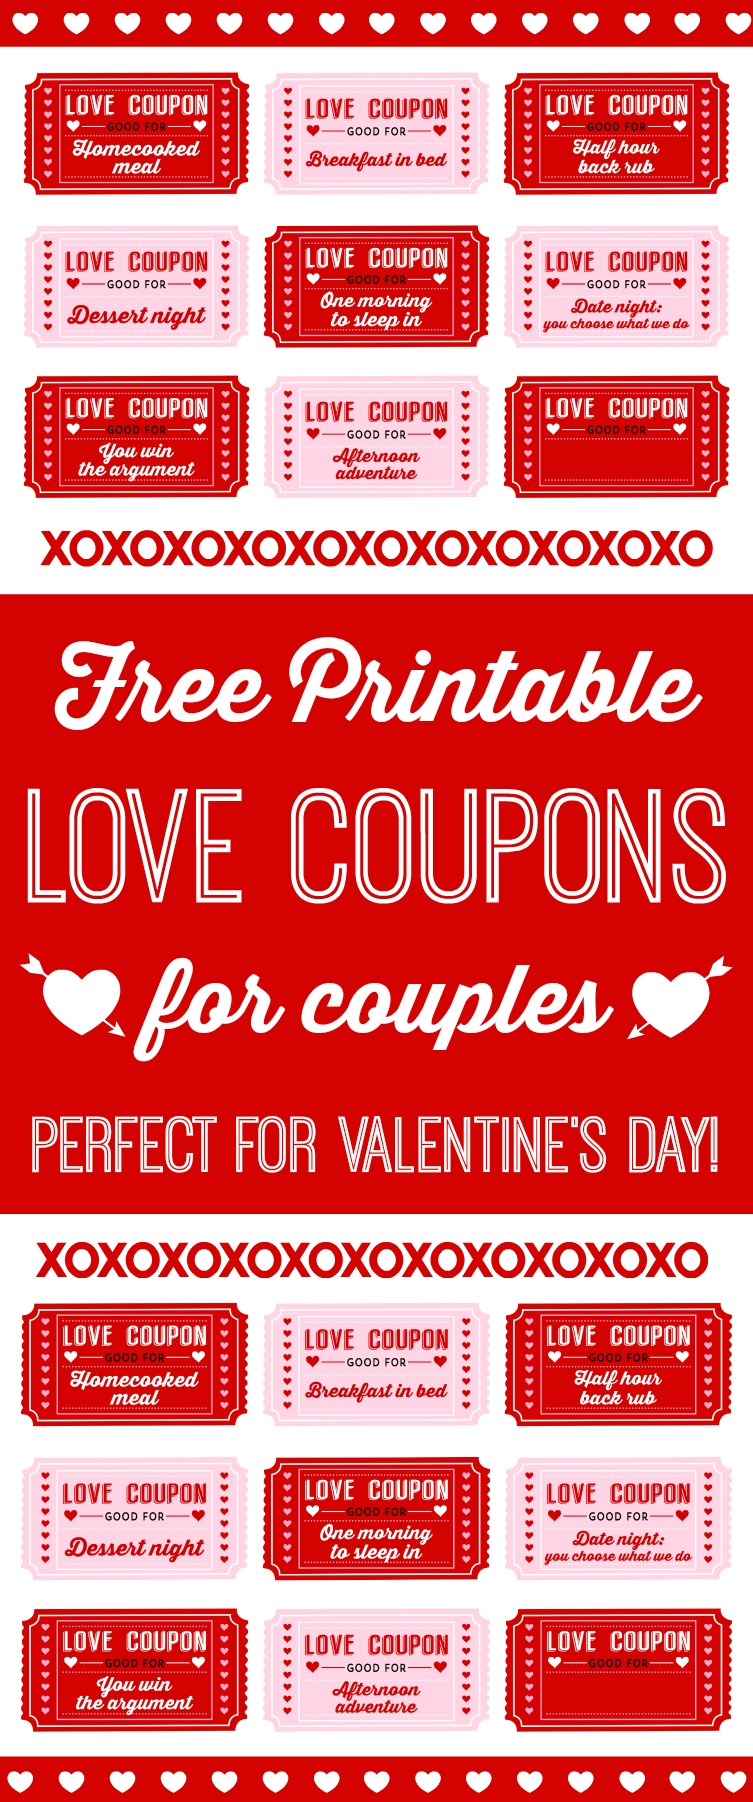 10 Wonderful Love Coupon Ideas For Boyfriend free printable love coupons for couples on valentines day catch 2020